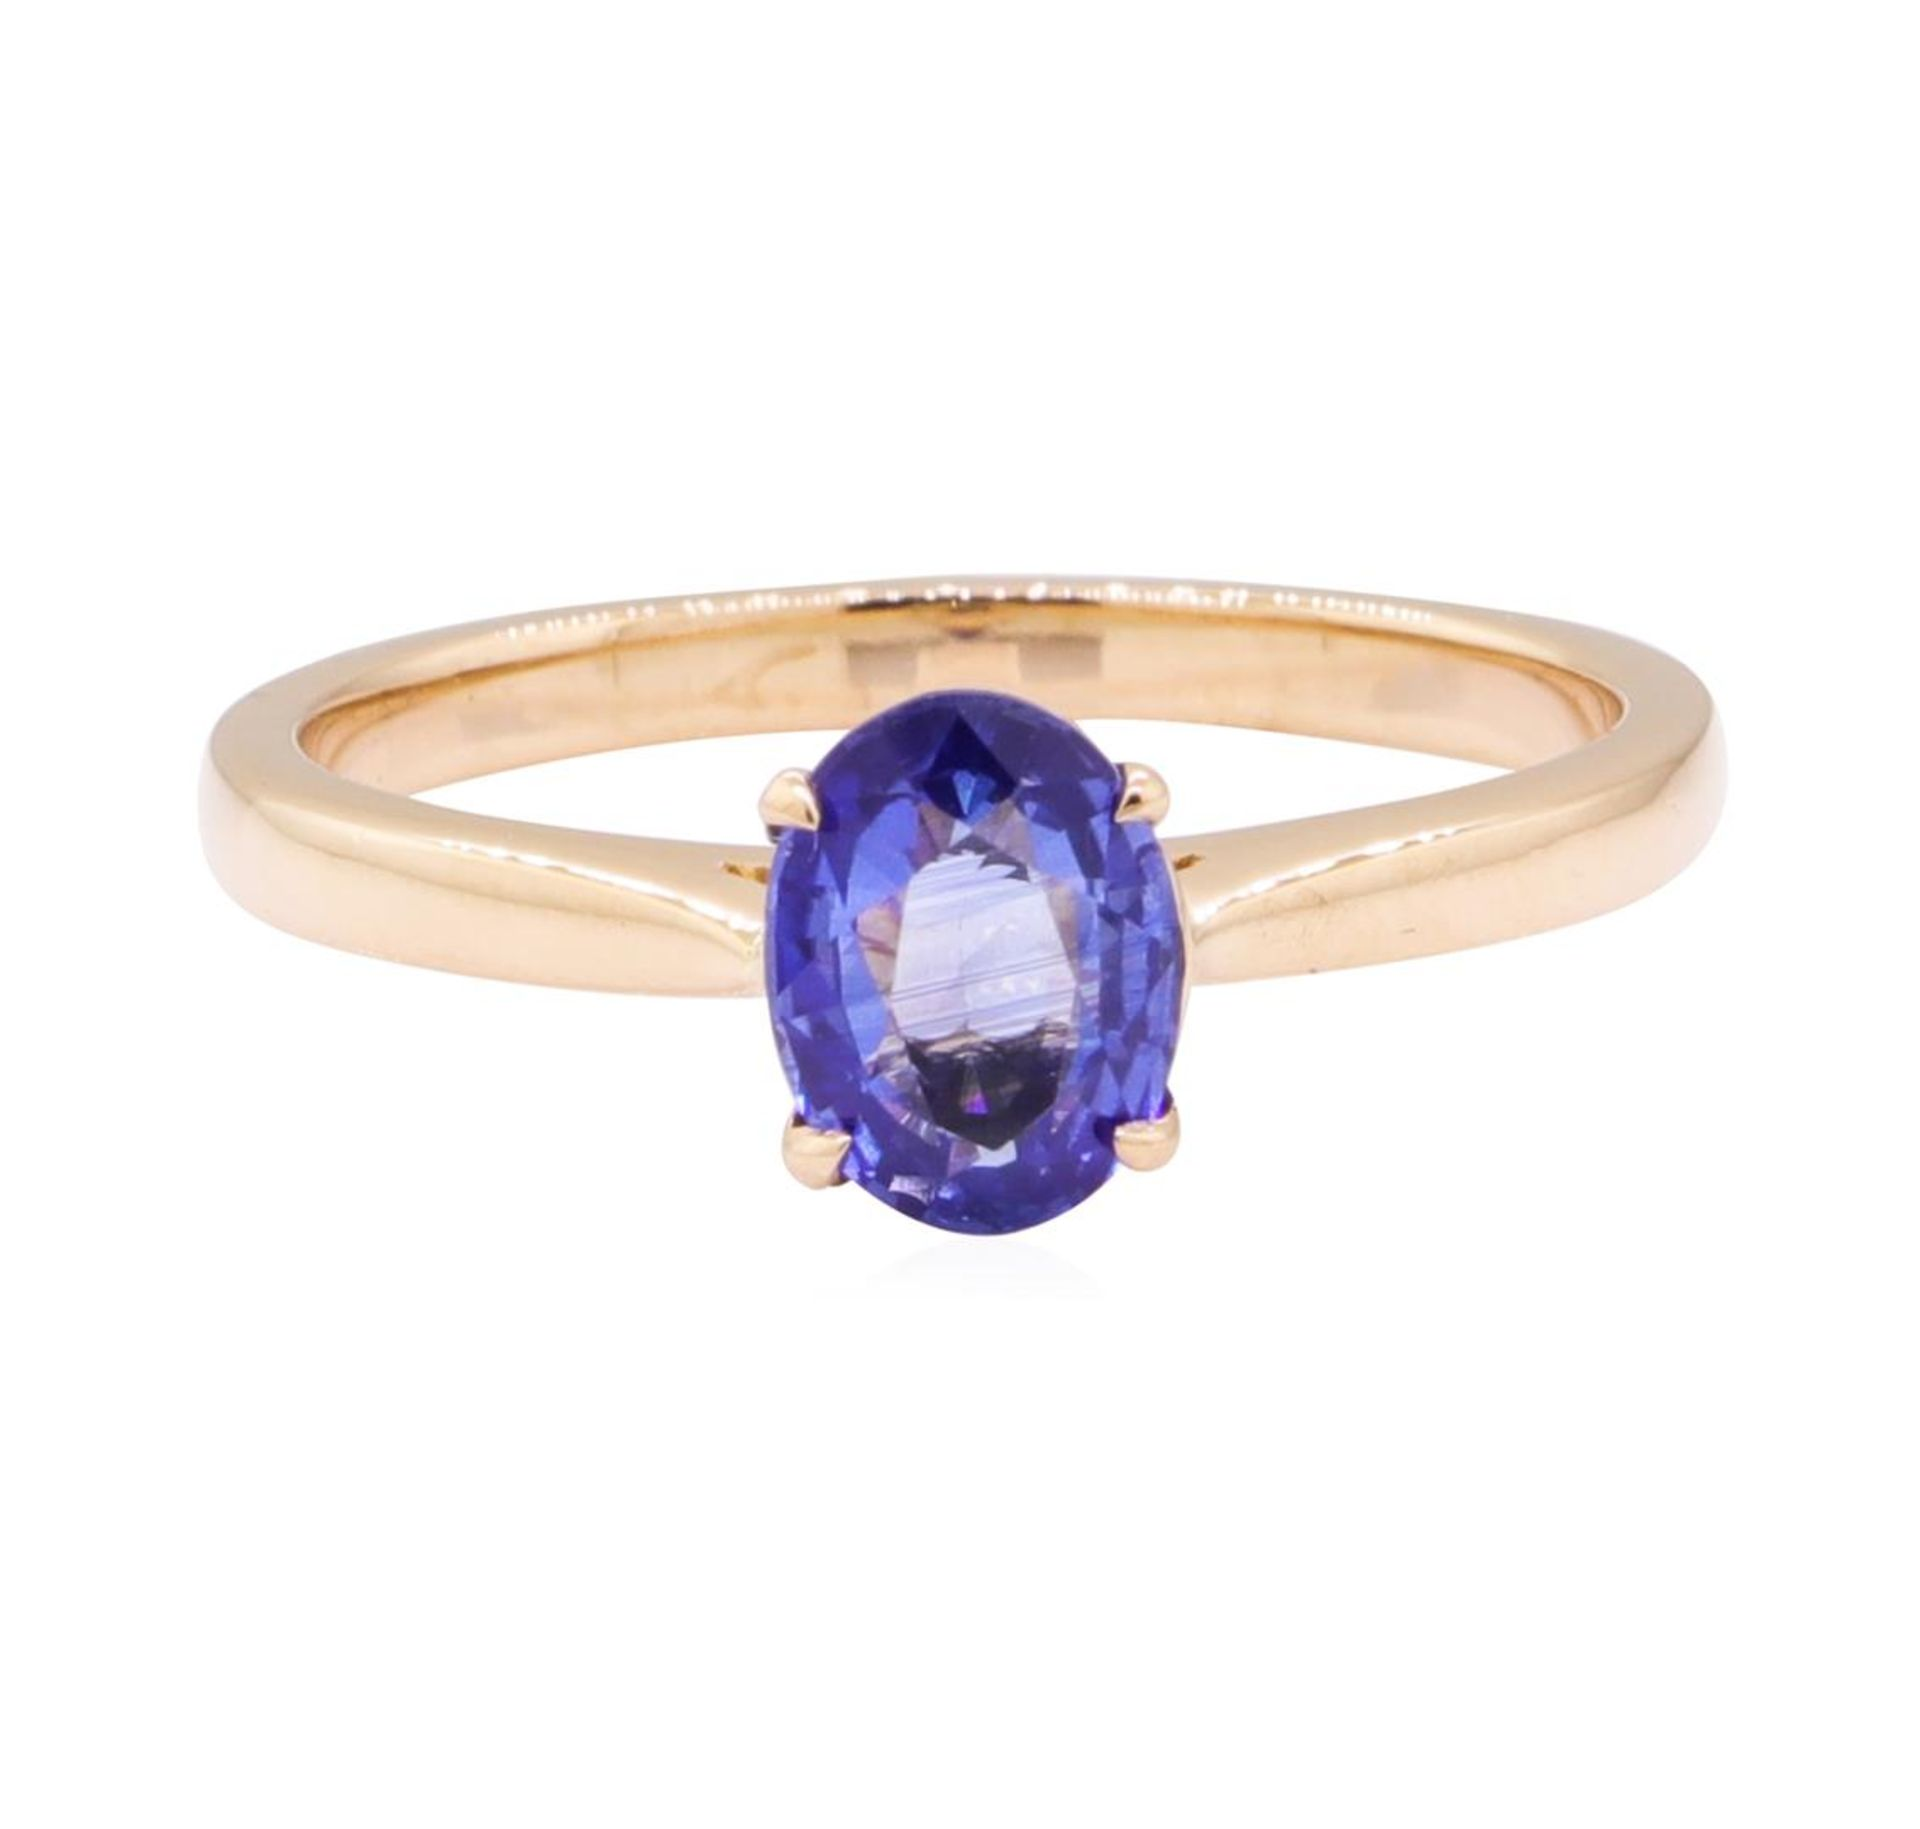 0.98ct Blue Sapphire Ring - 18KT Rose Gold - Image 2 of 4